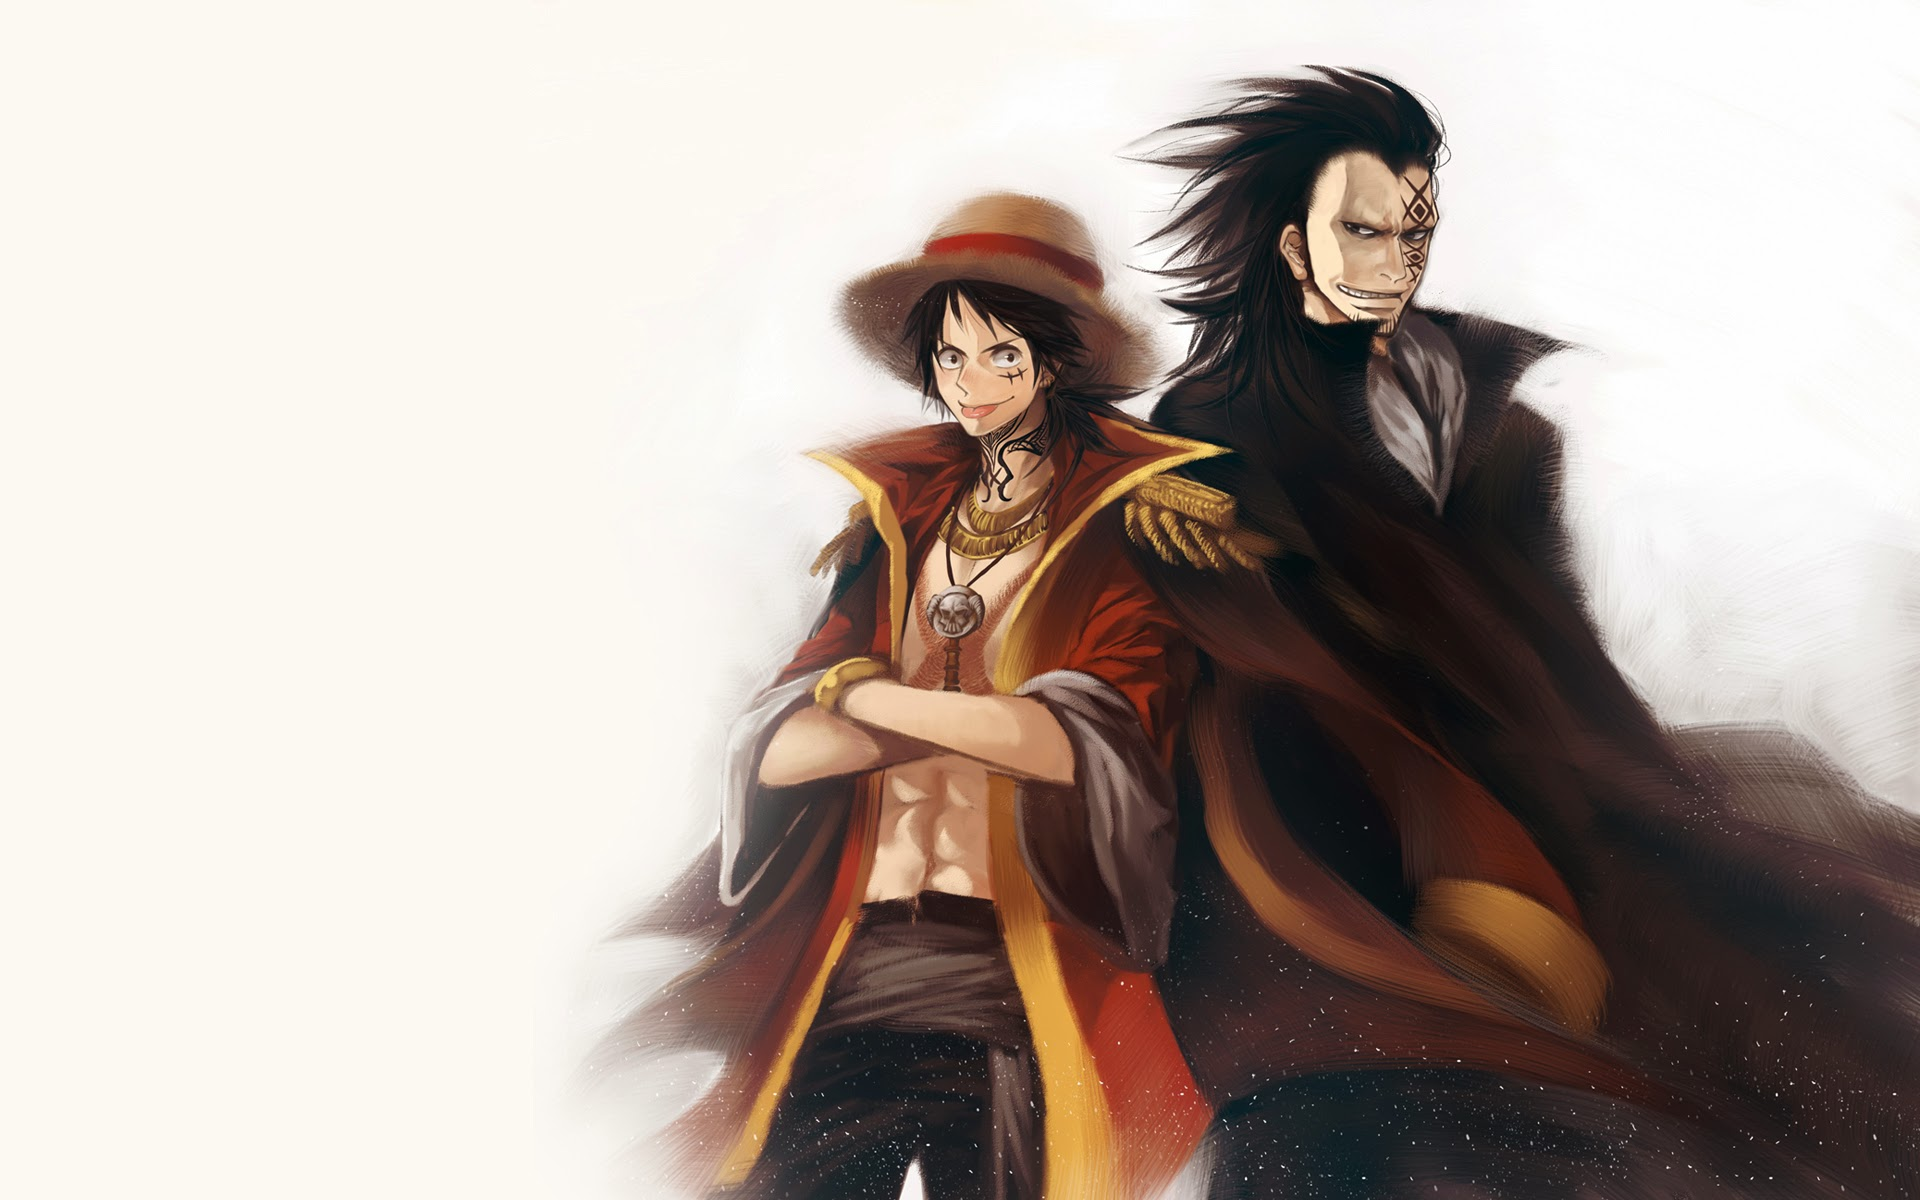 Monkey D Dragon Monkey D Luffy Wallpaper Hd One Piece Luffy King Of Pirates 1920x1200 Download Hd Wallpaper Wallpapertip